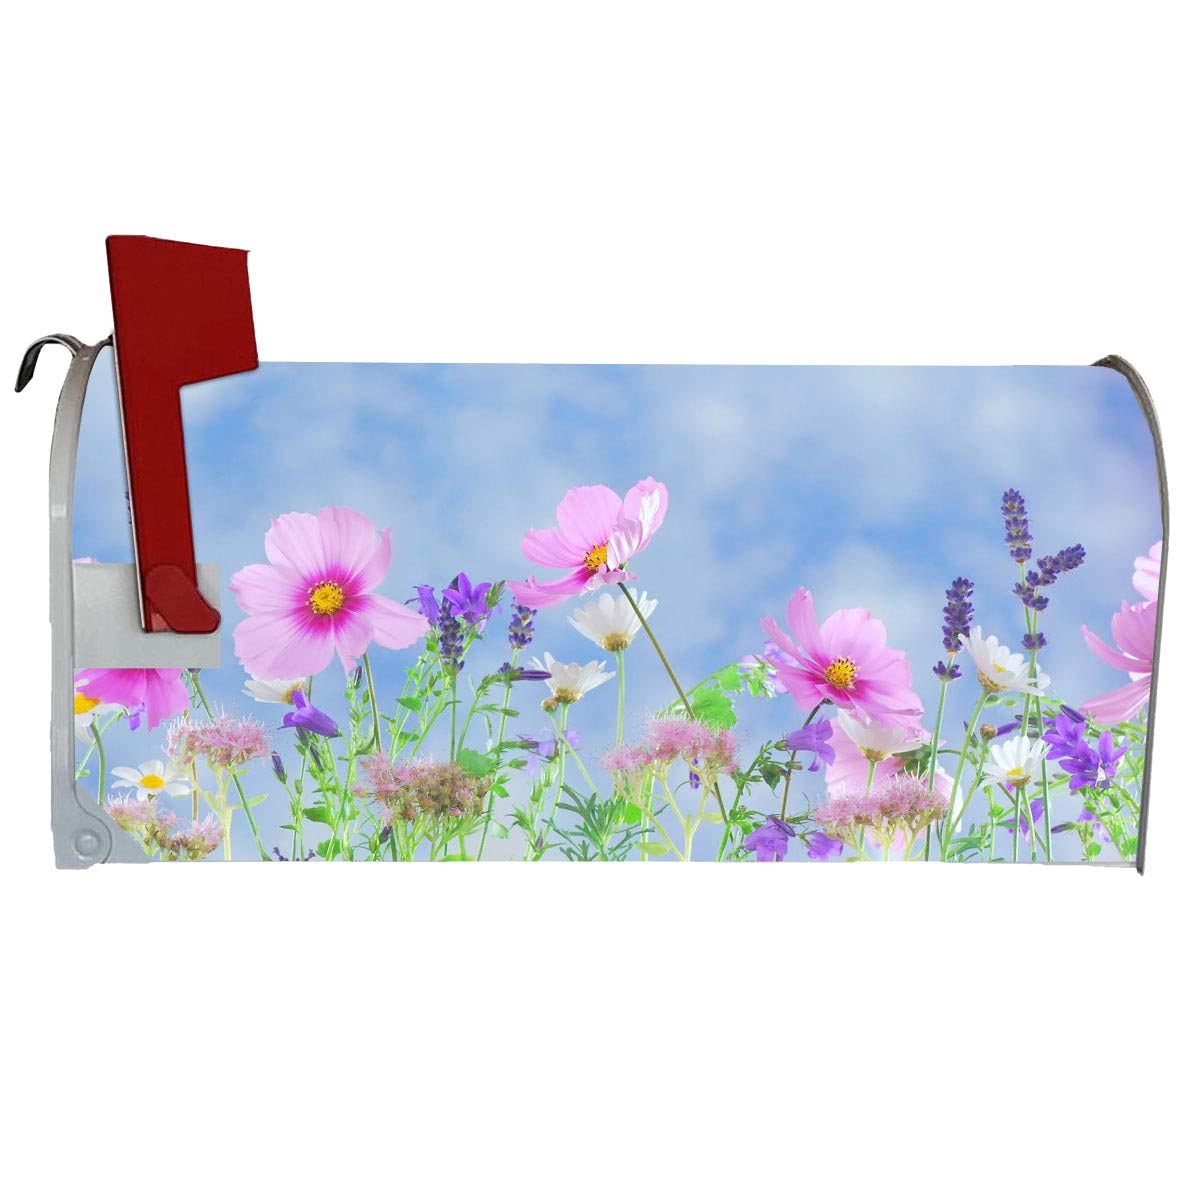 VWAQ Spring Flowers Magnetic Mailbox Cover - Summer Floral Decorative Magnet - MBM2 - VWAQ Vinyl Wall Art Quotes and Prints